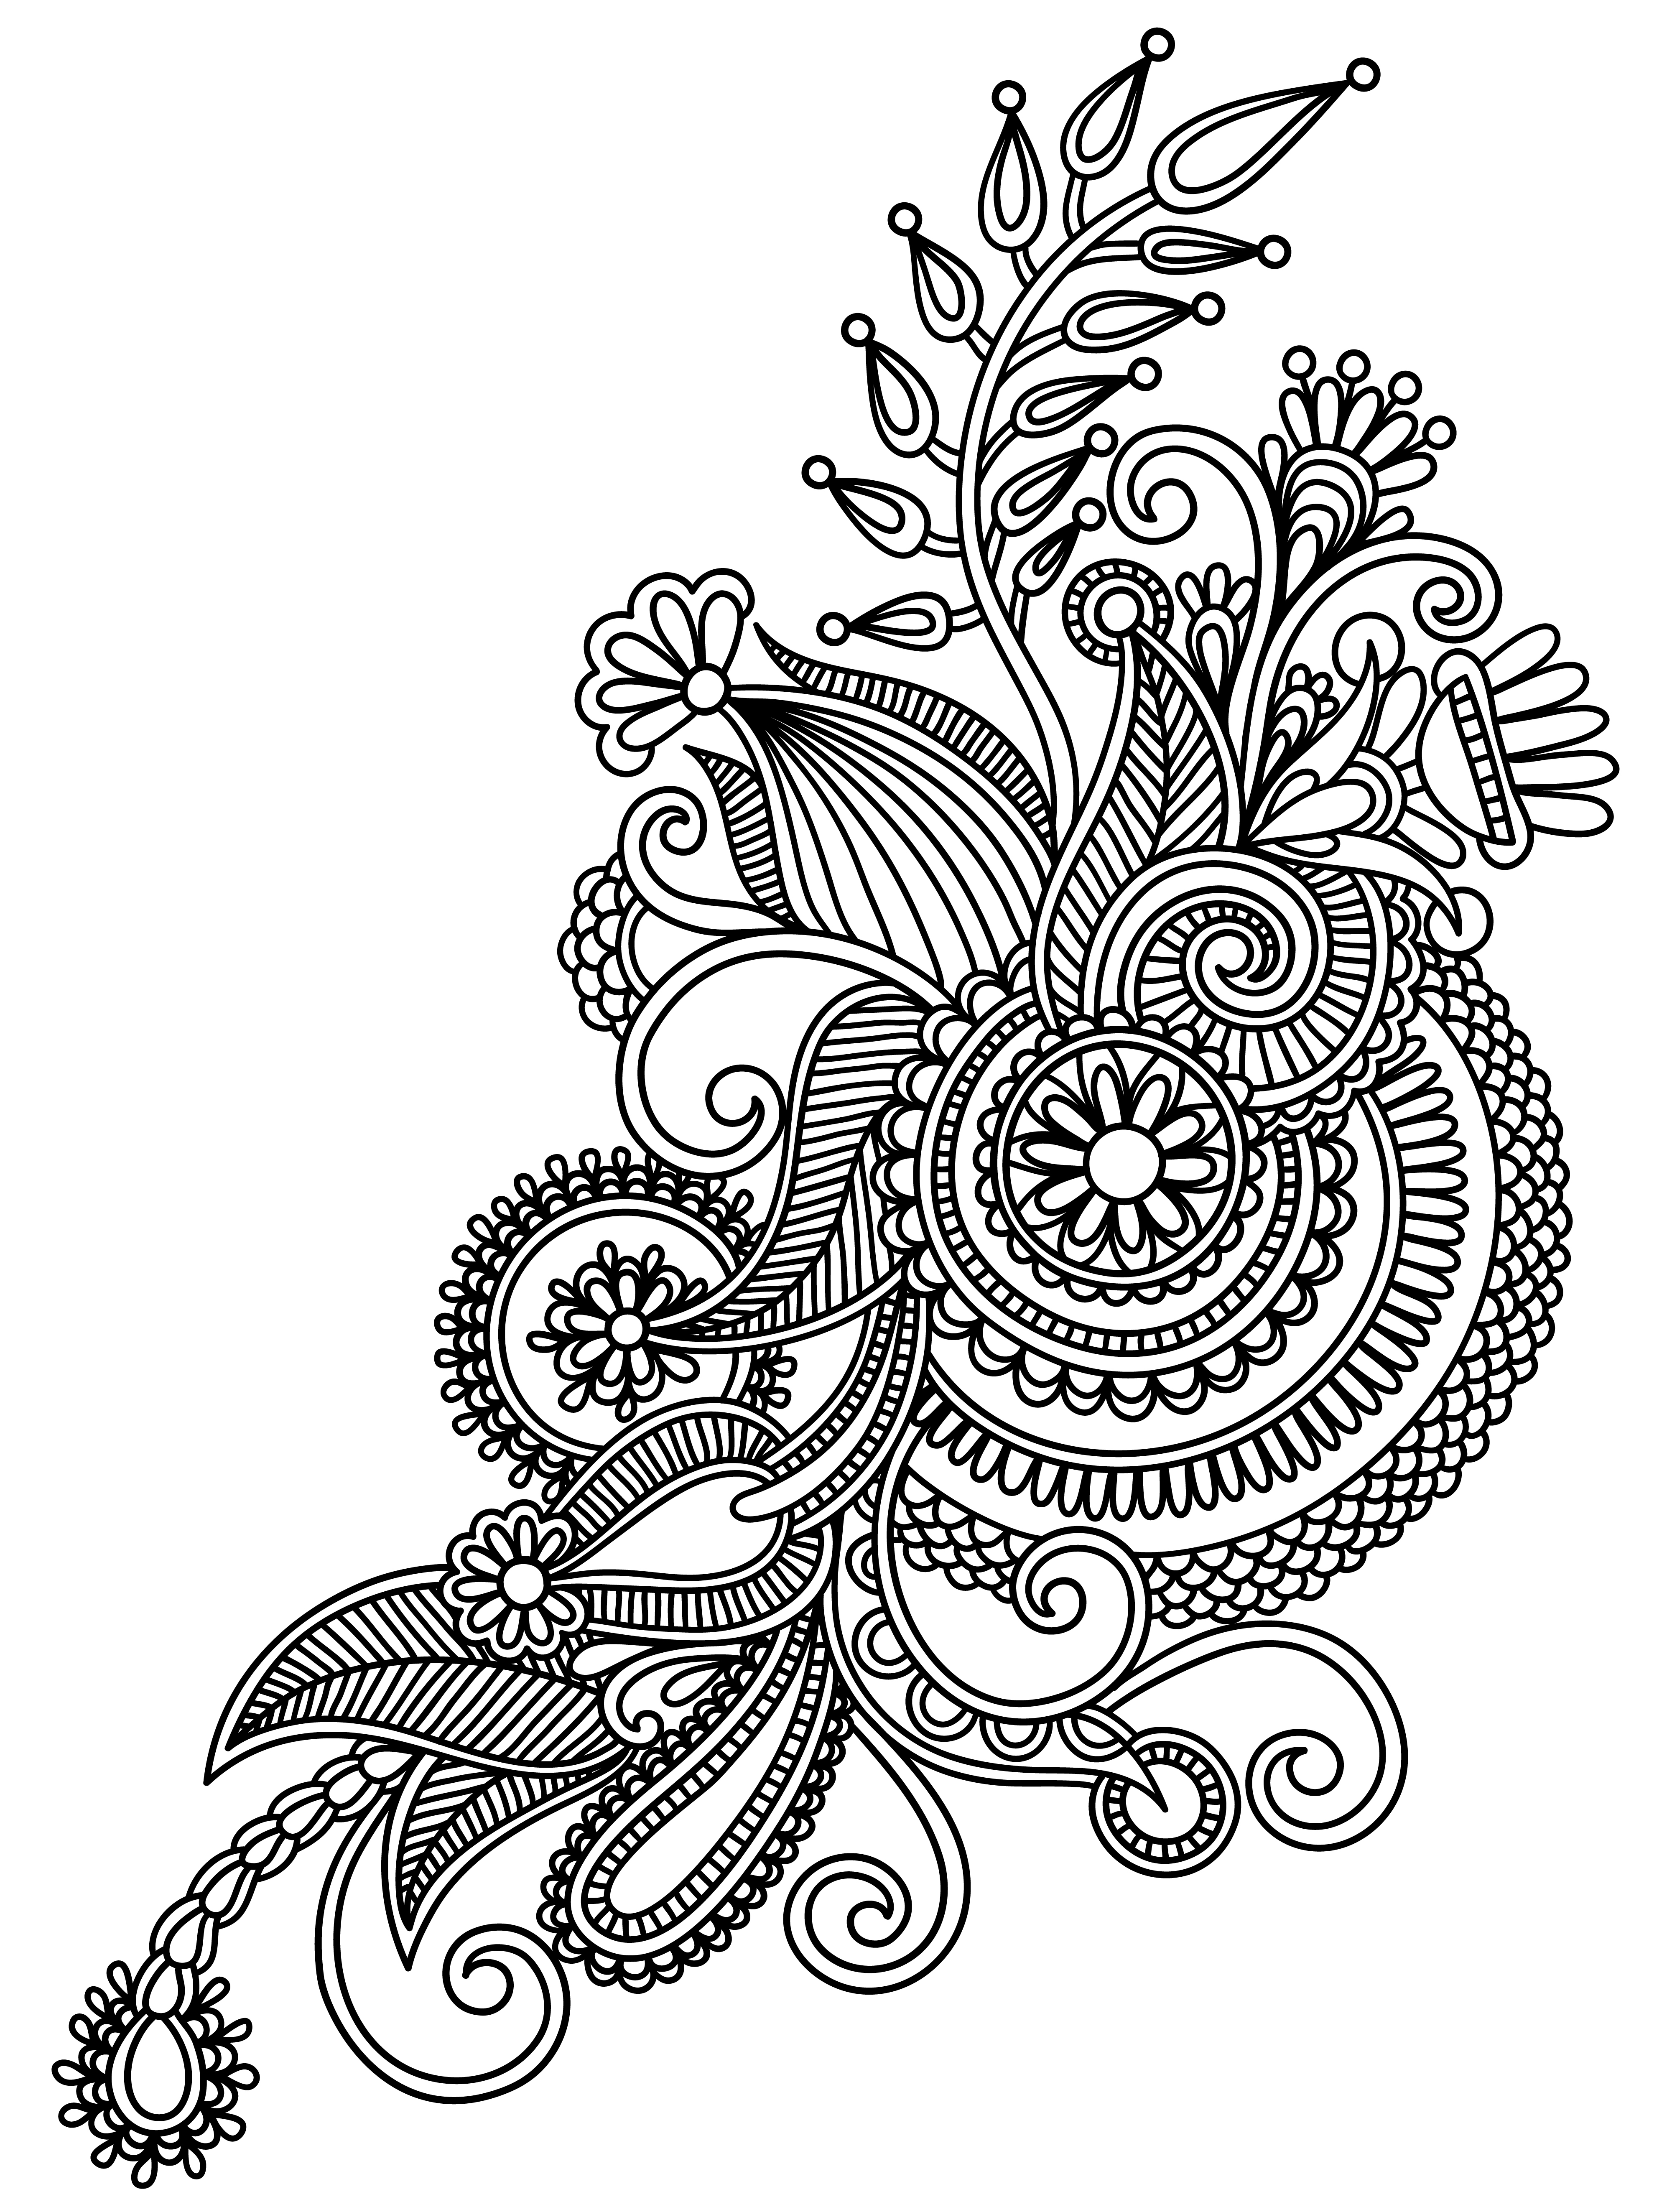 The Best Free Relax Coloring Page Images Download From 71